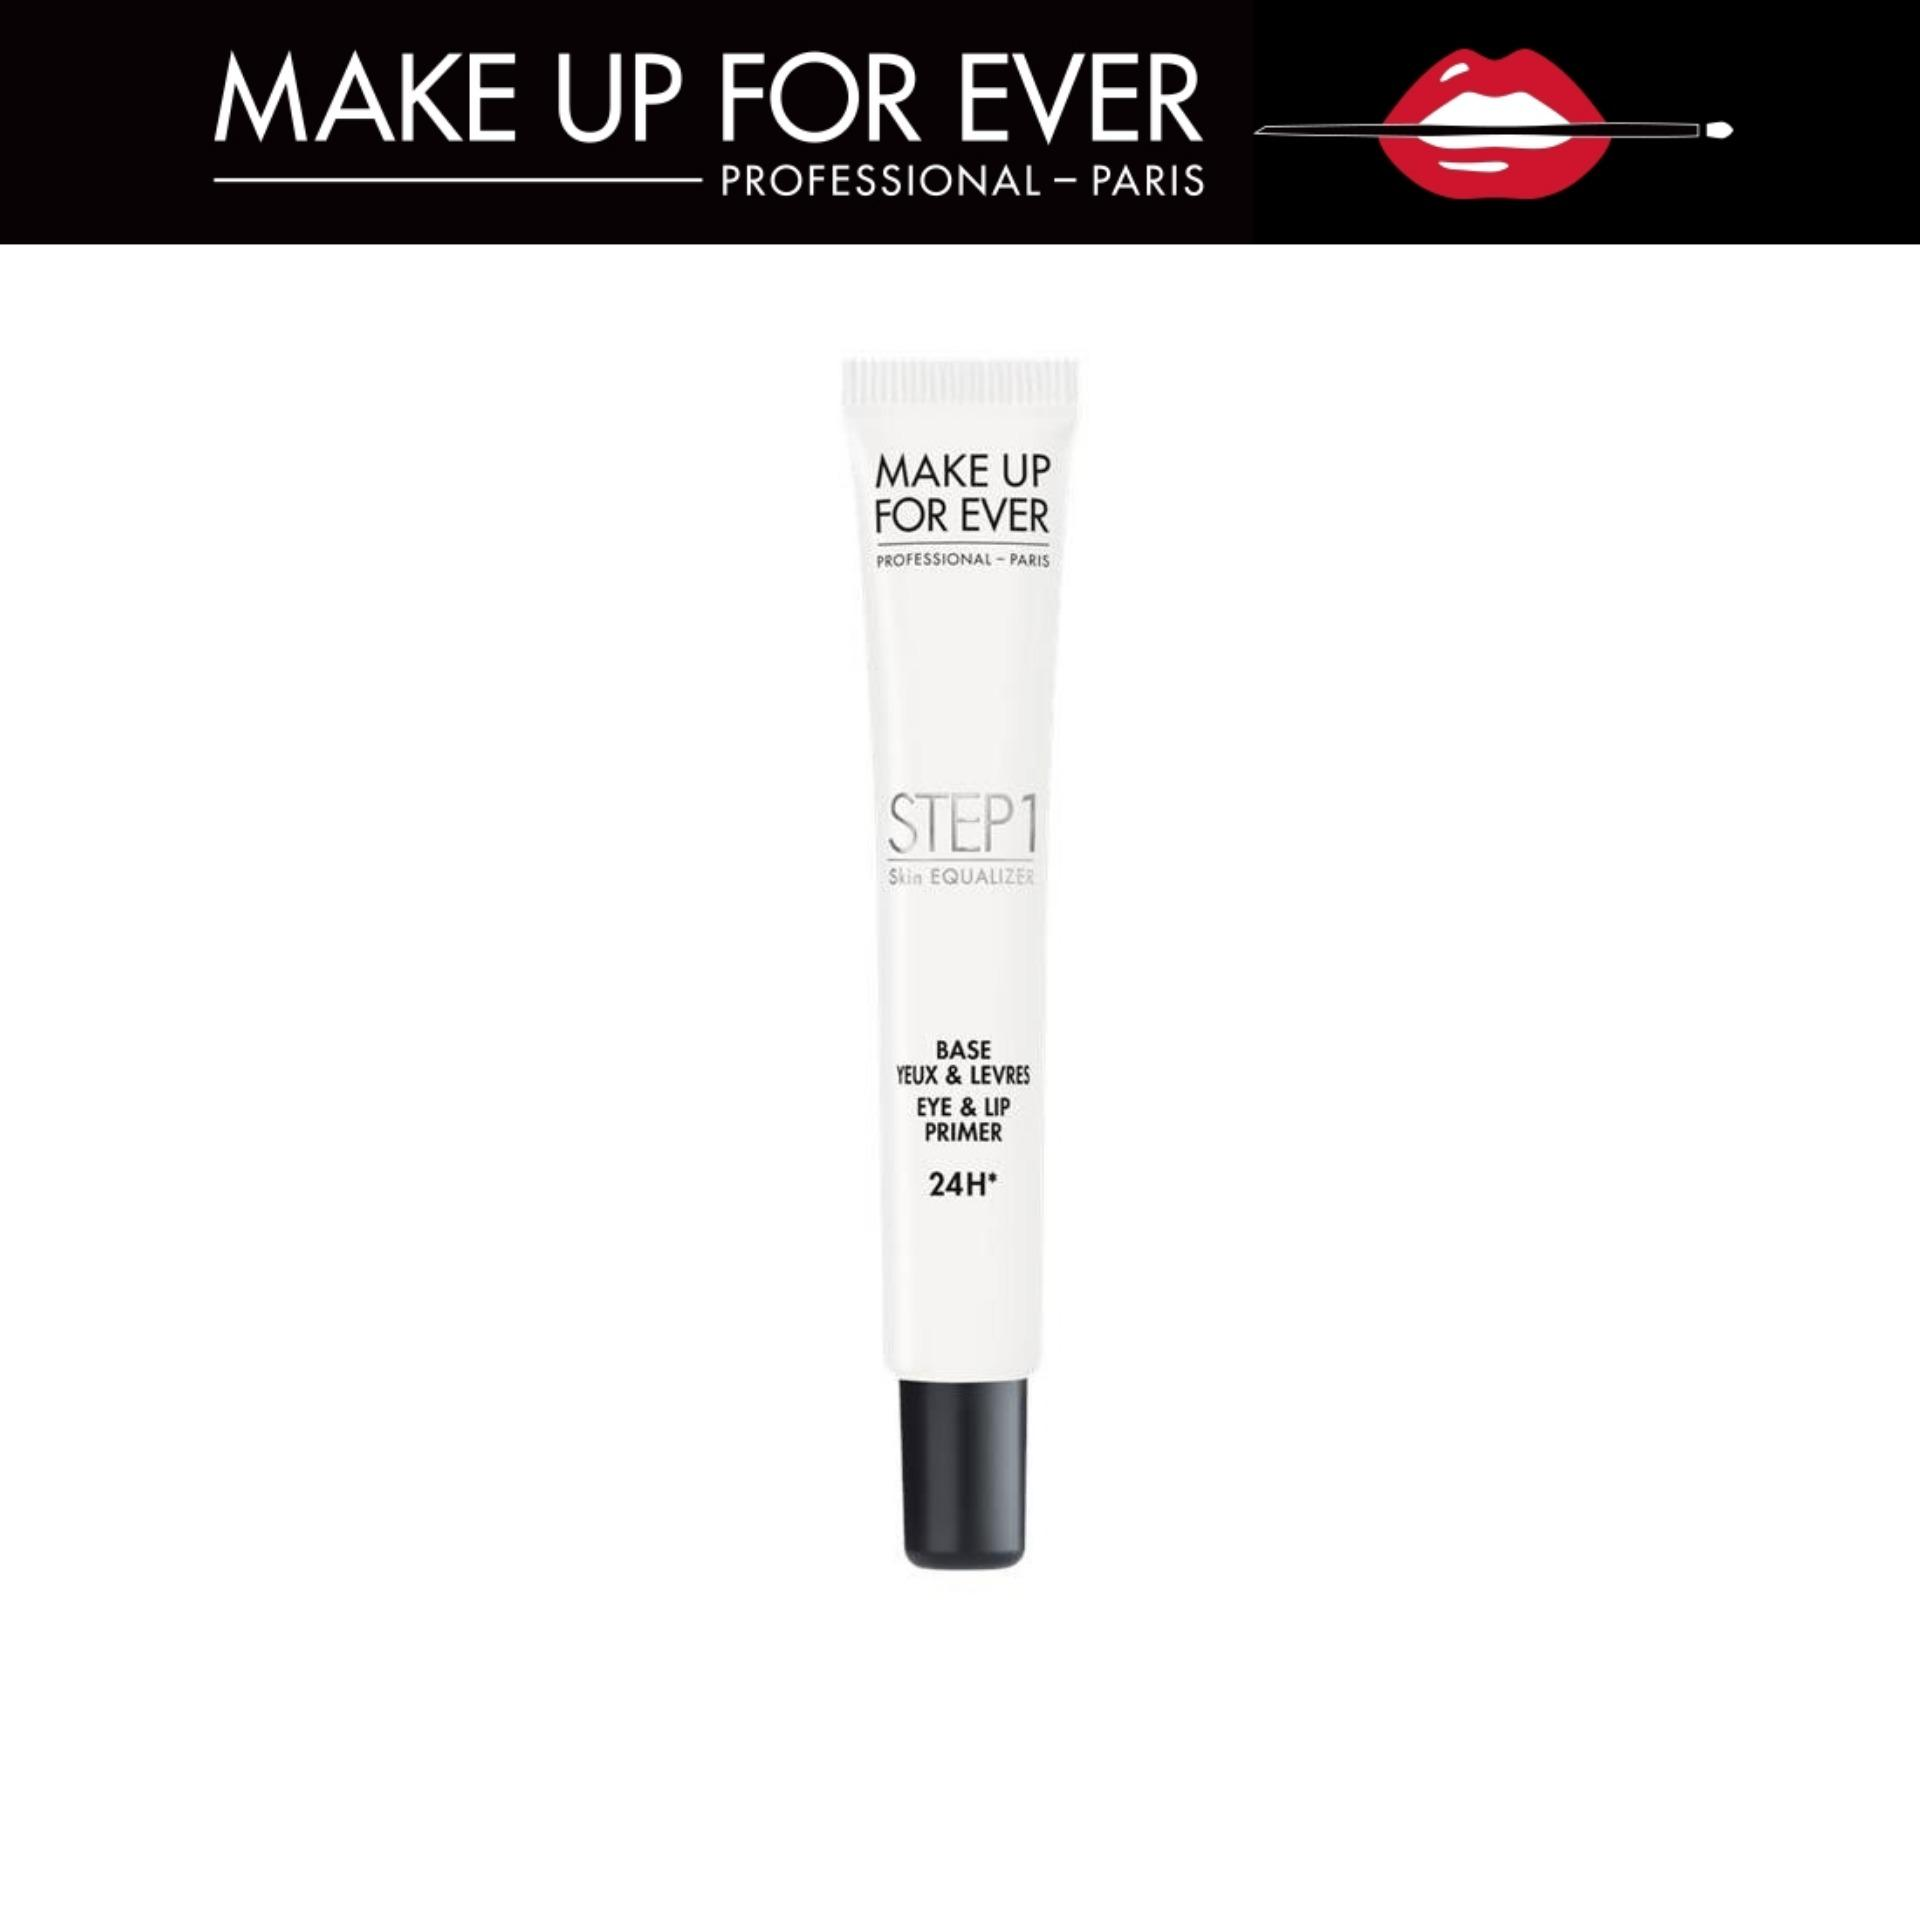 MAKE UP FOR EVER - STEP 1 EYE & LIP EQUALIZER Philippines